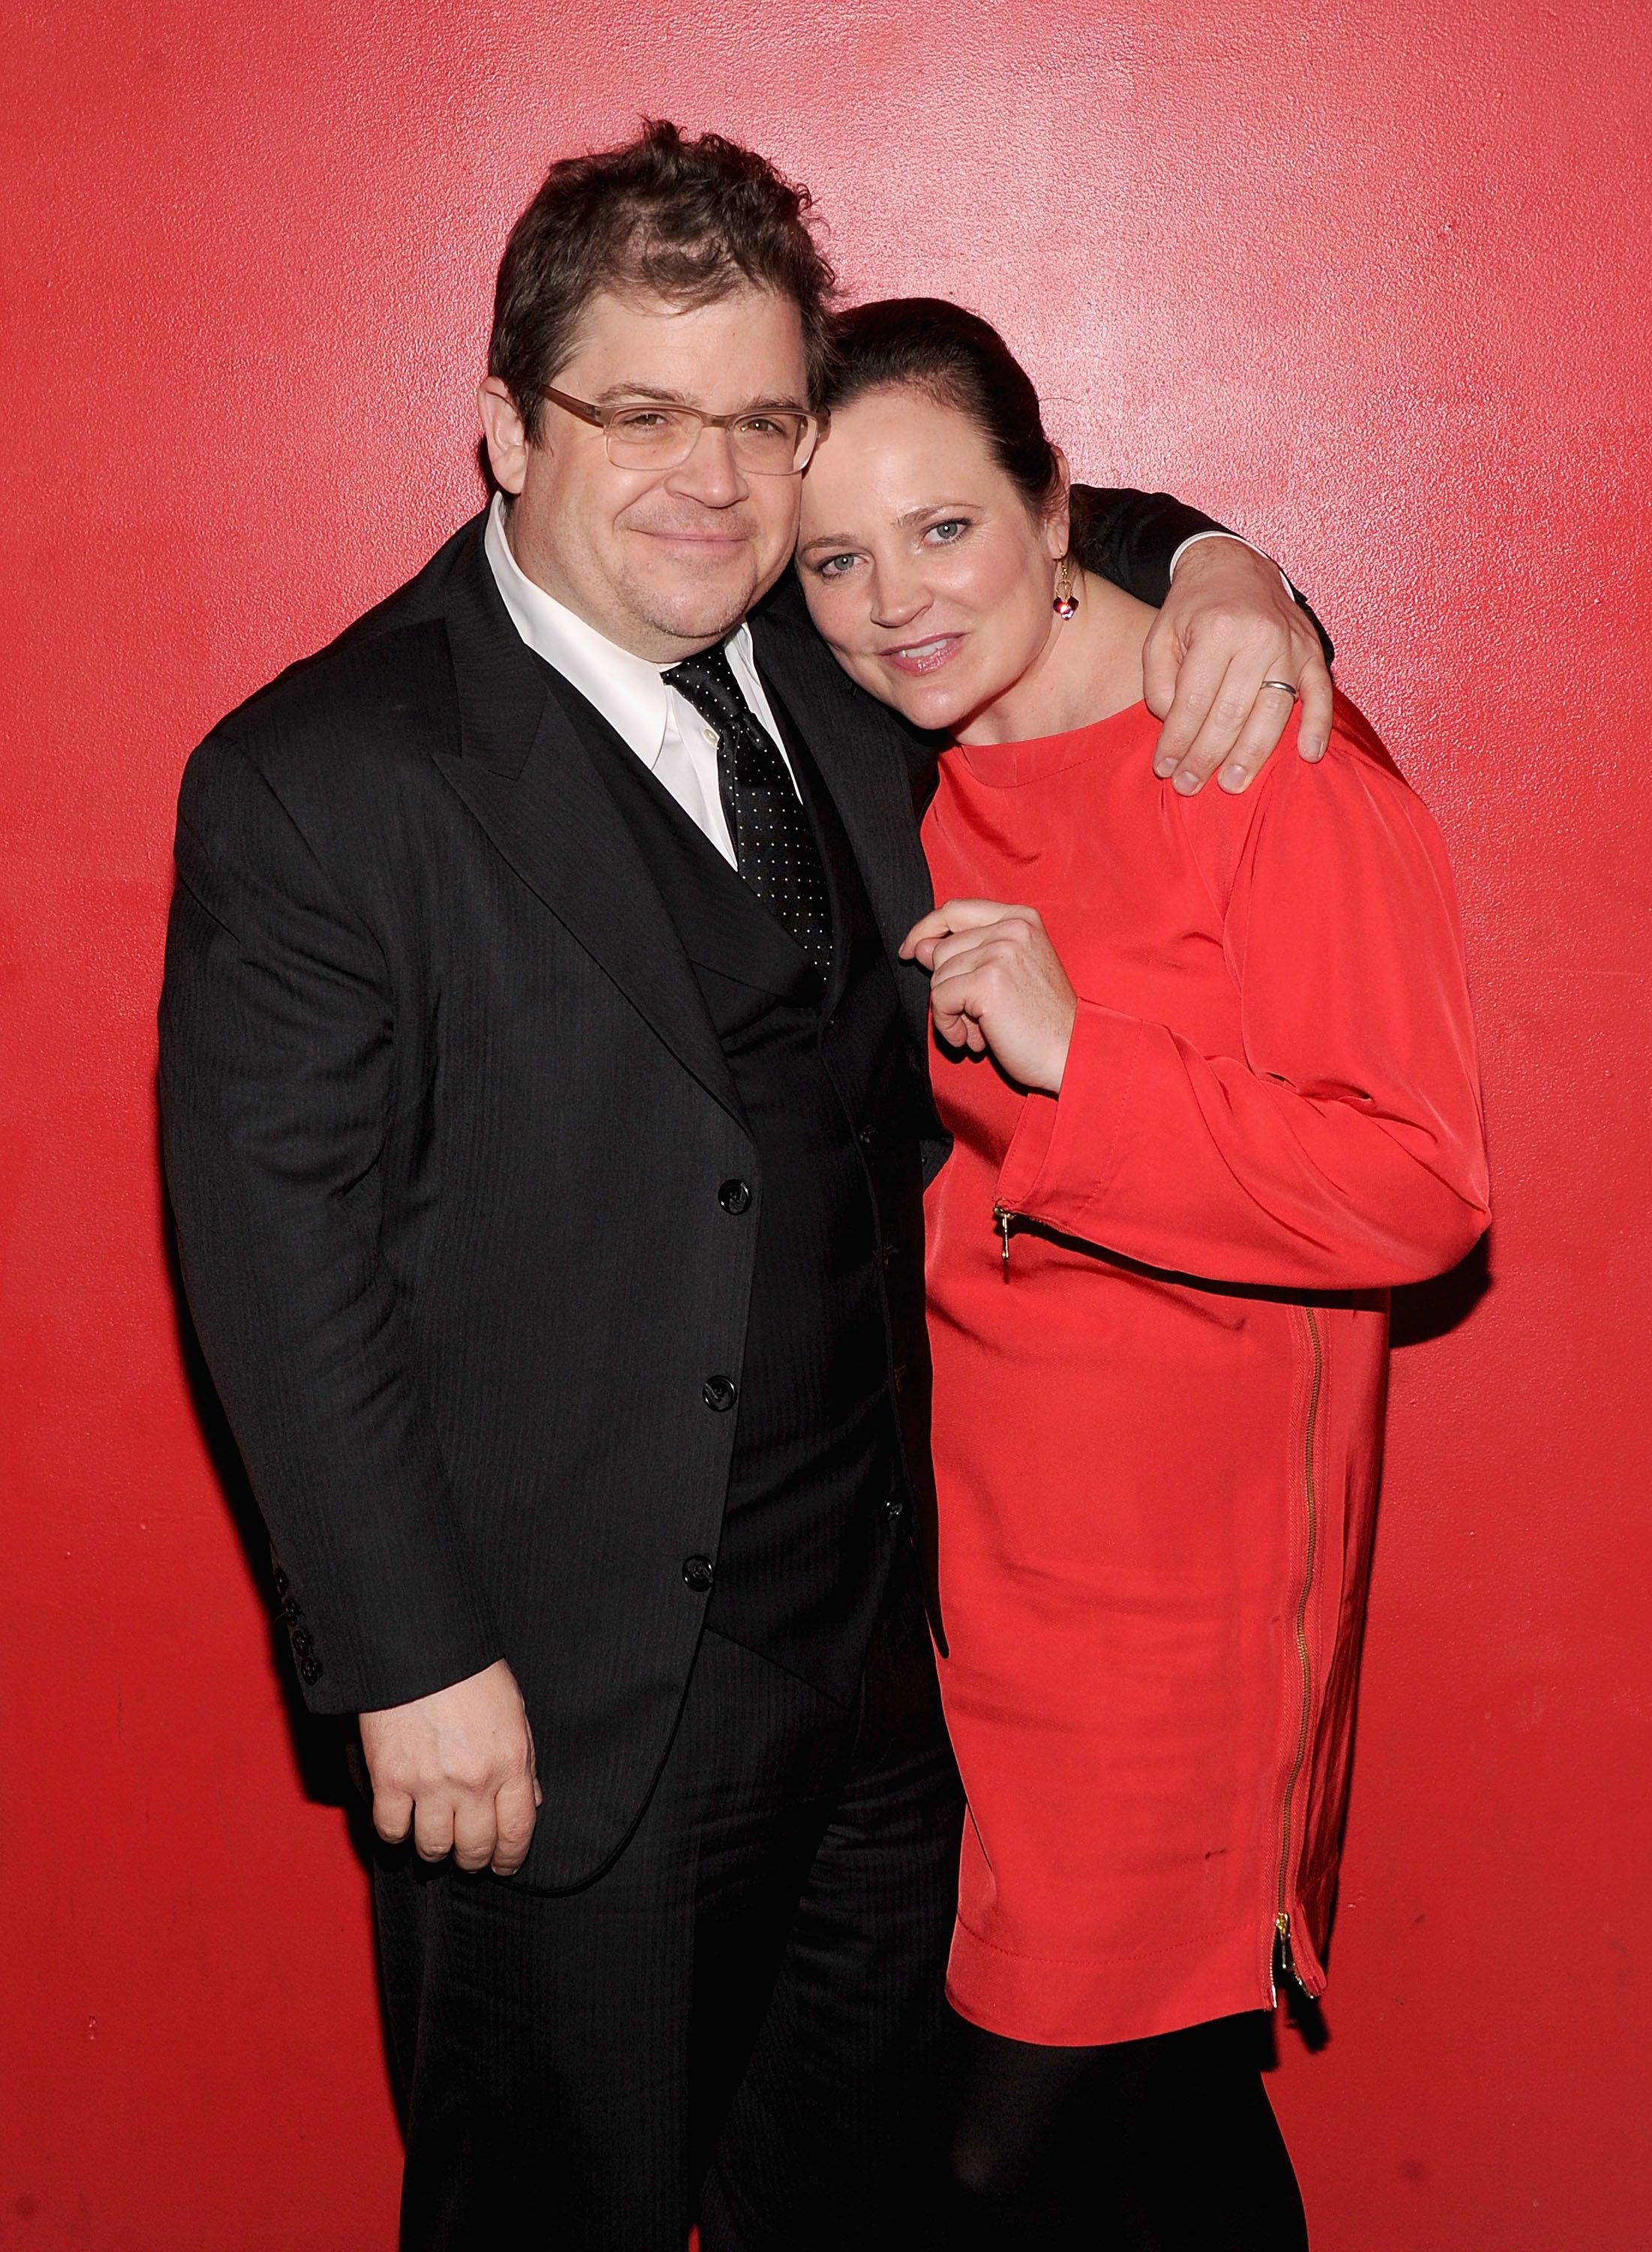 Patton Oswalt's wife, crime writer Michelle McNamara, diedin 2016, months before the presidential election.